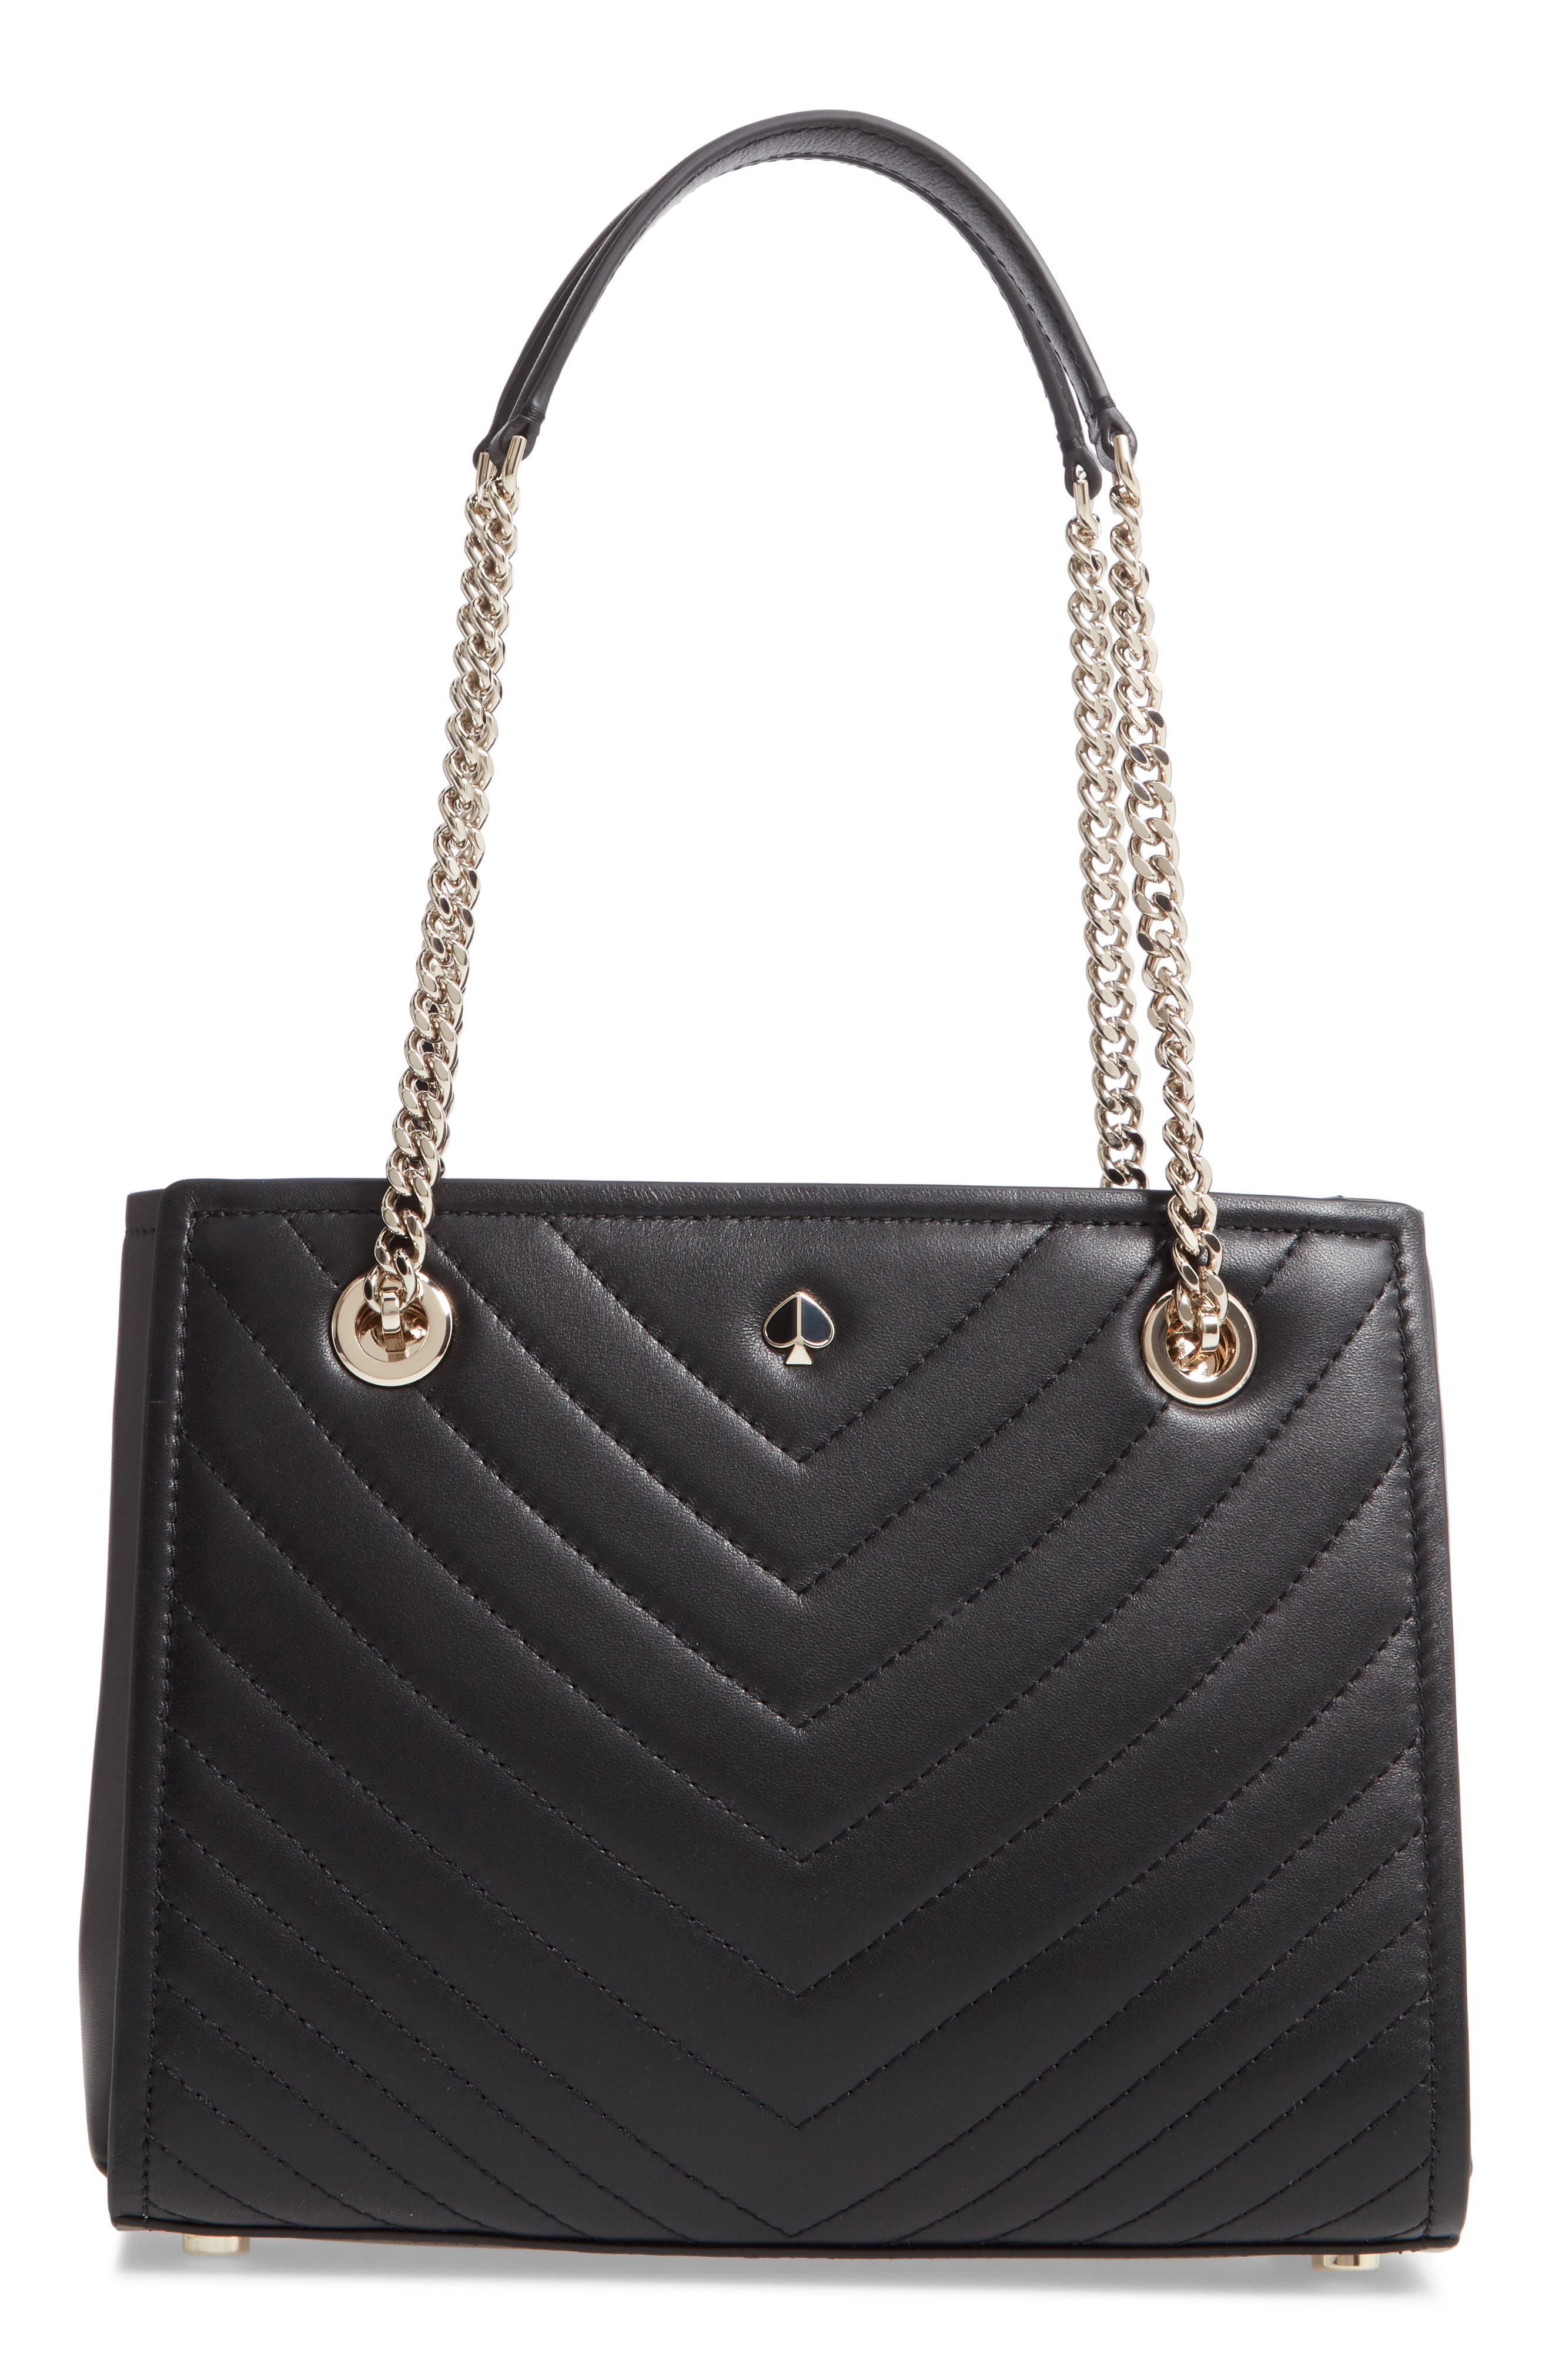 KATE SPADE NEW YORK, small amelia leather tote, Main thumbnail 1, color, BLACK